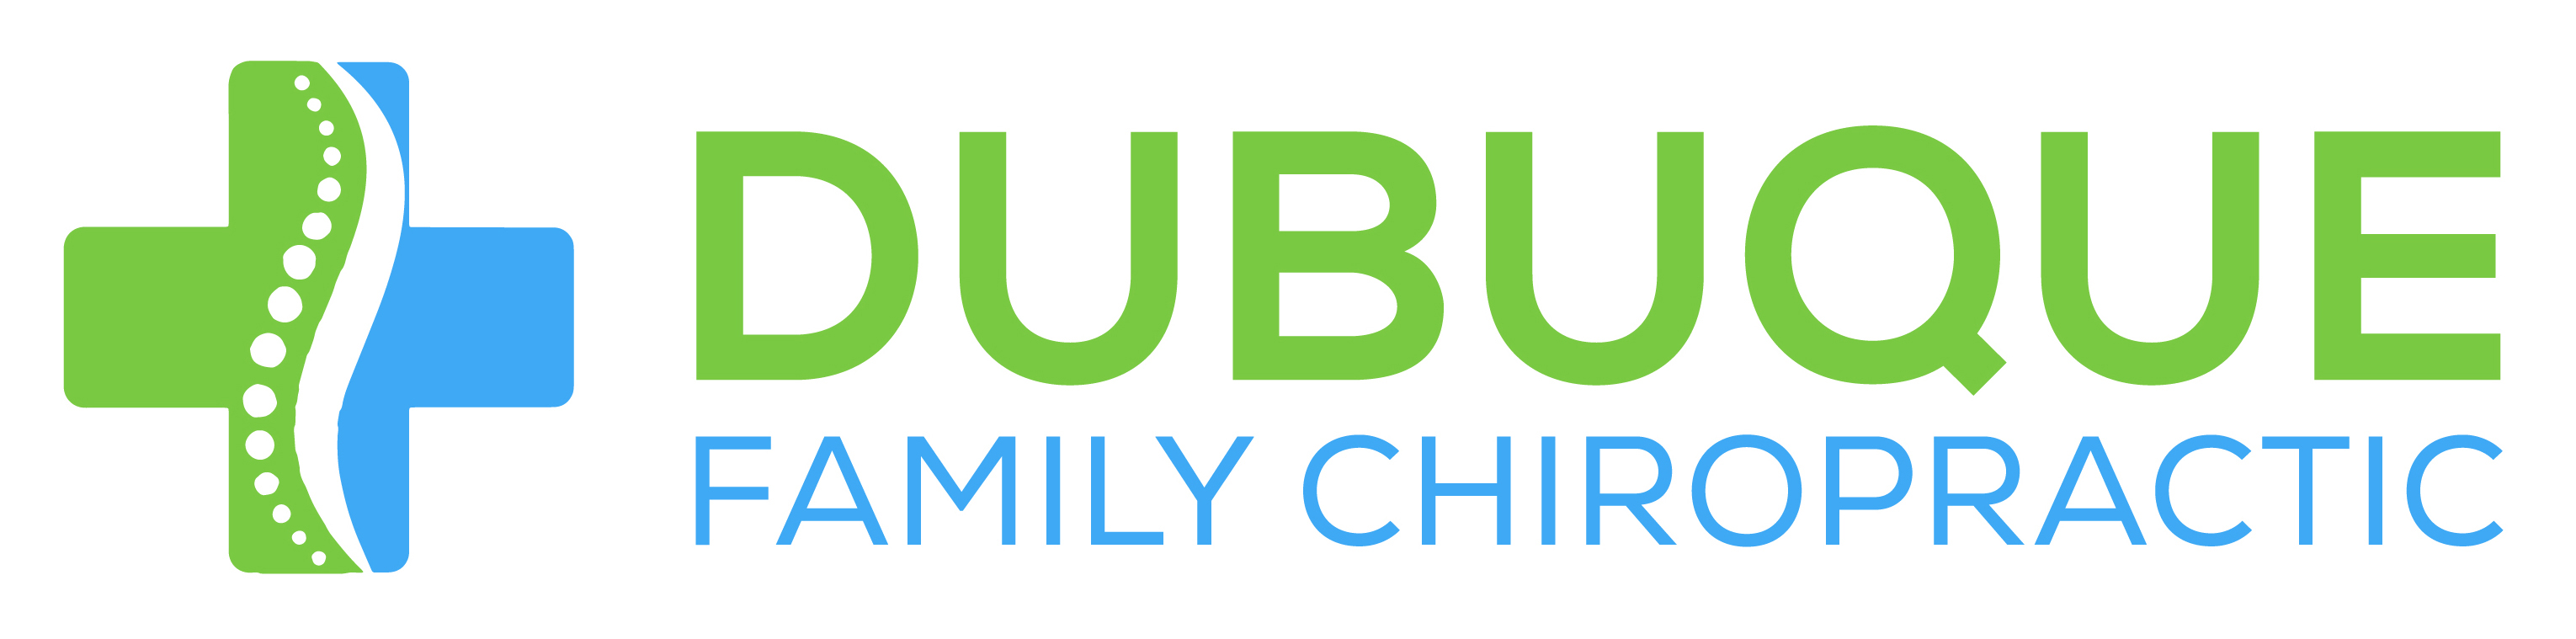 Dubuque Family Chiropractic